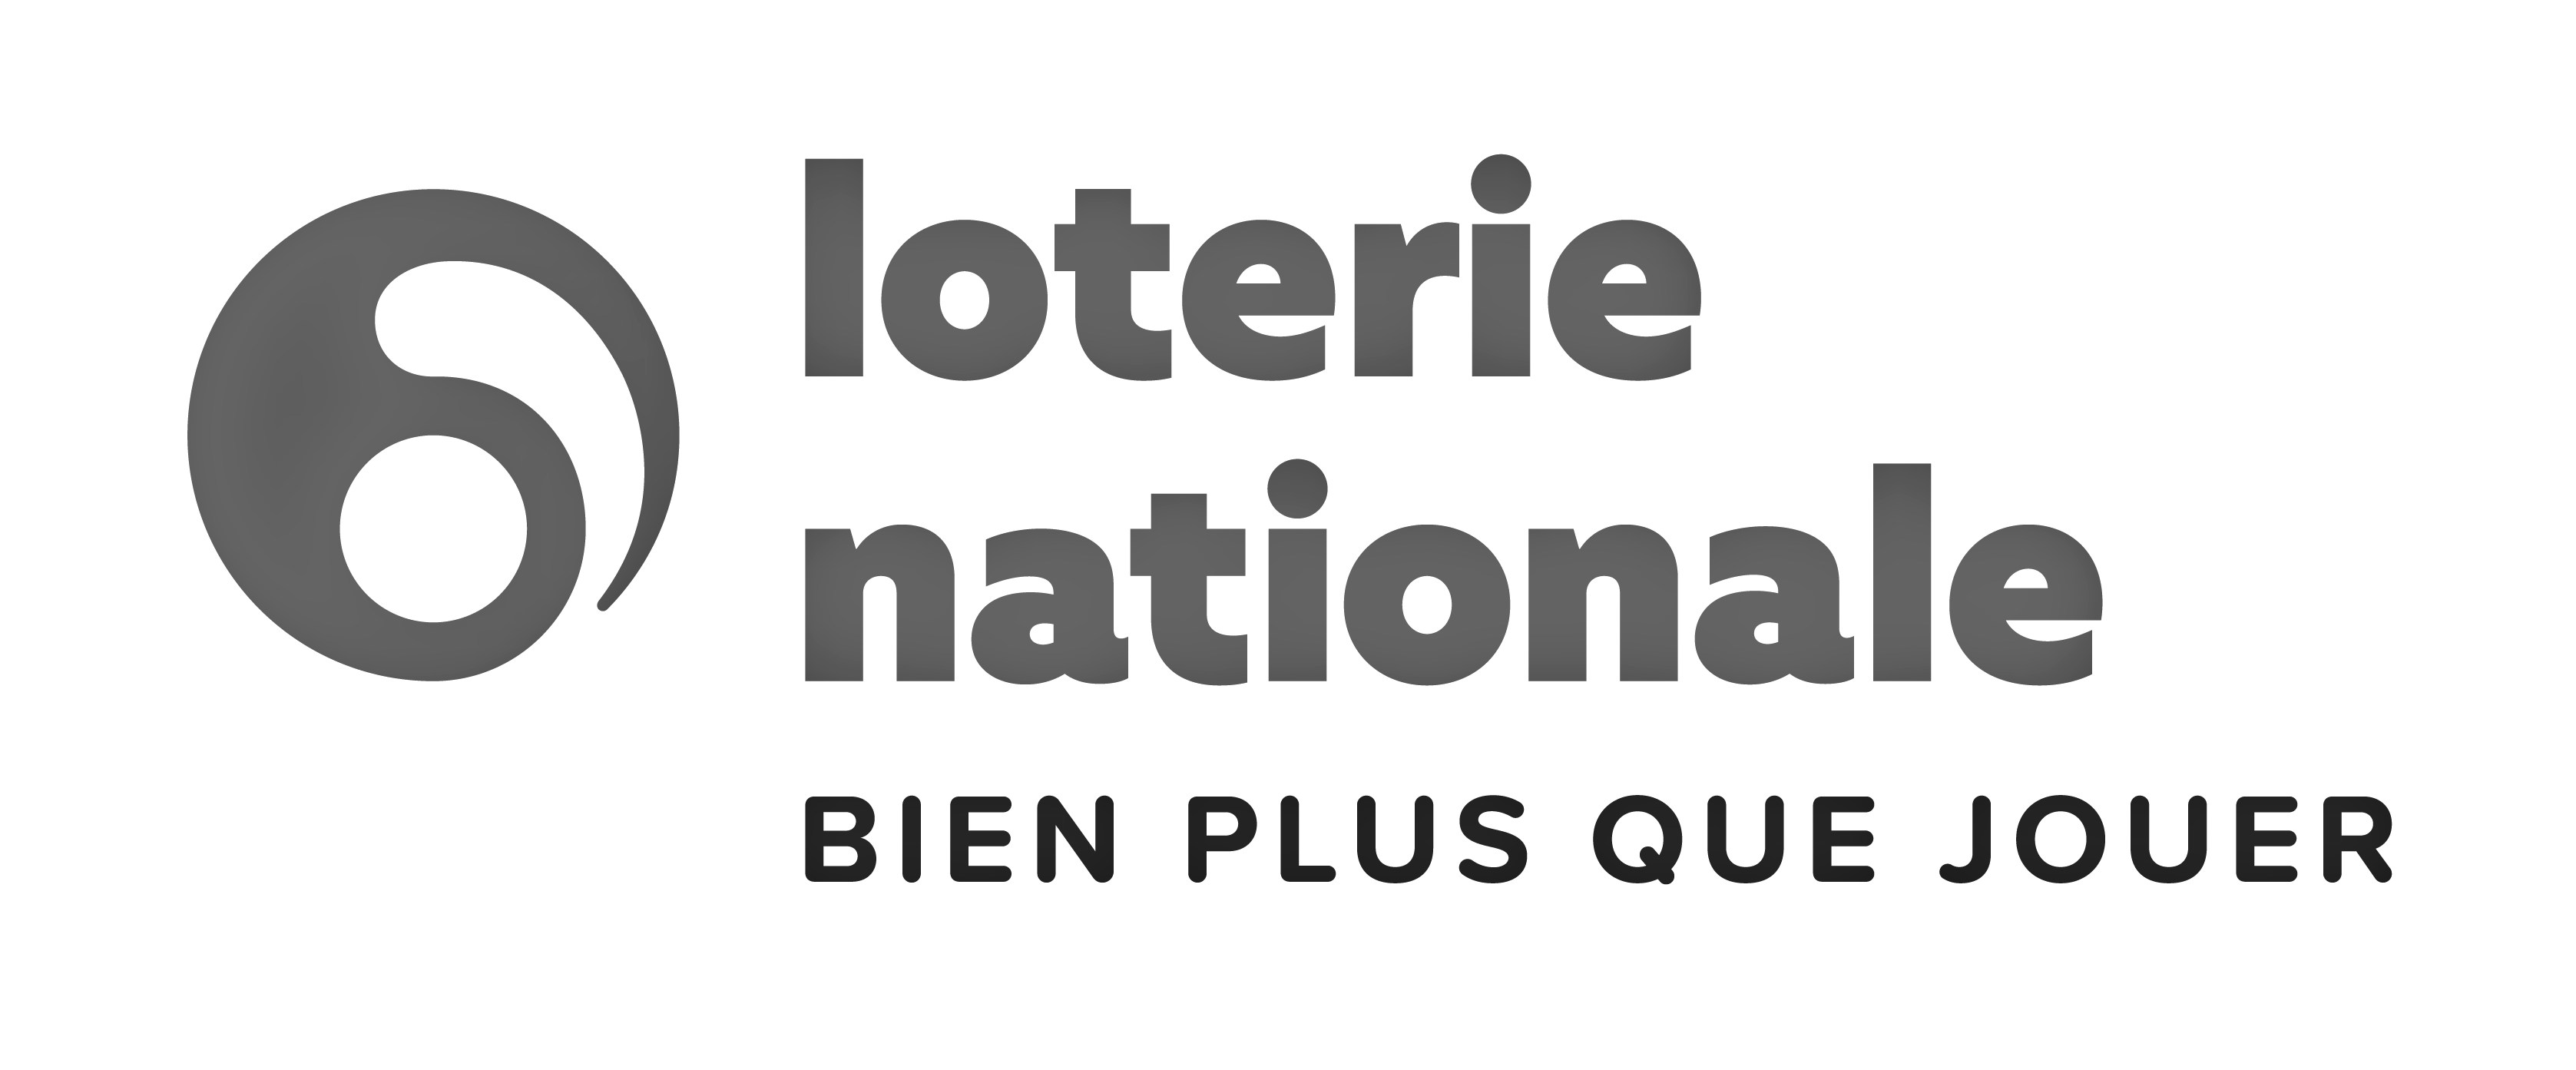 Loterie-nationale-explore